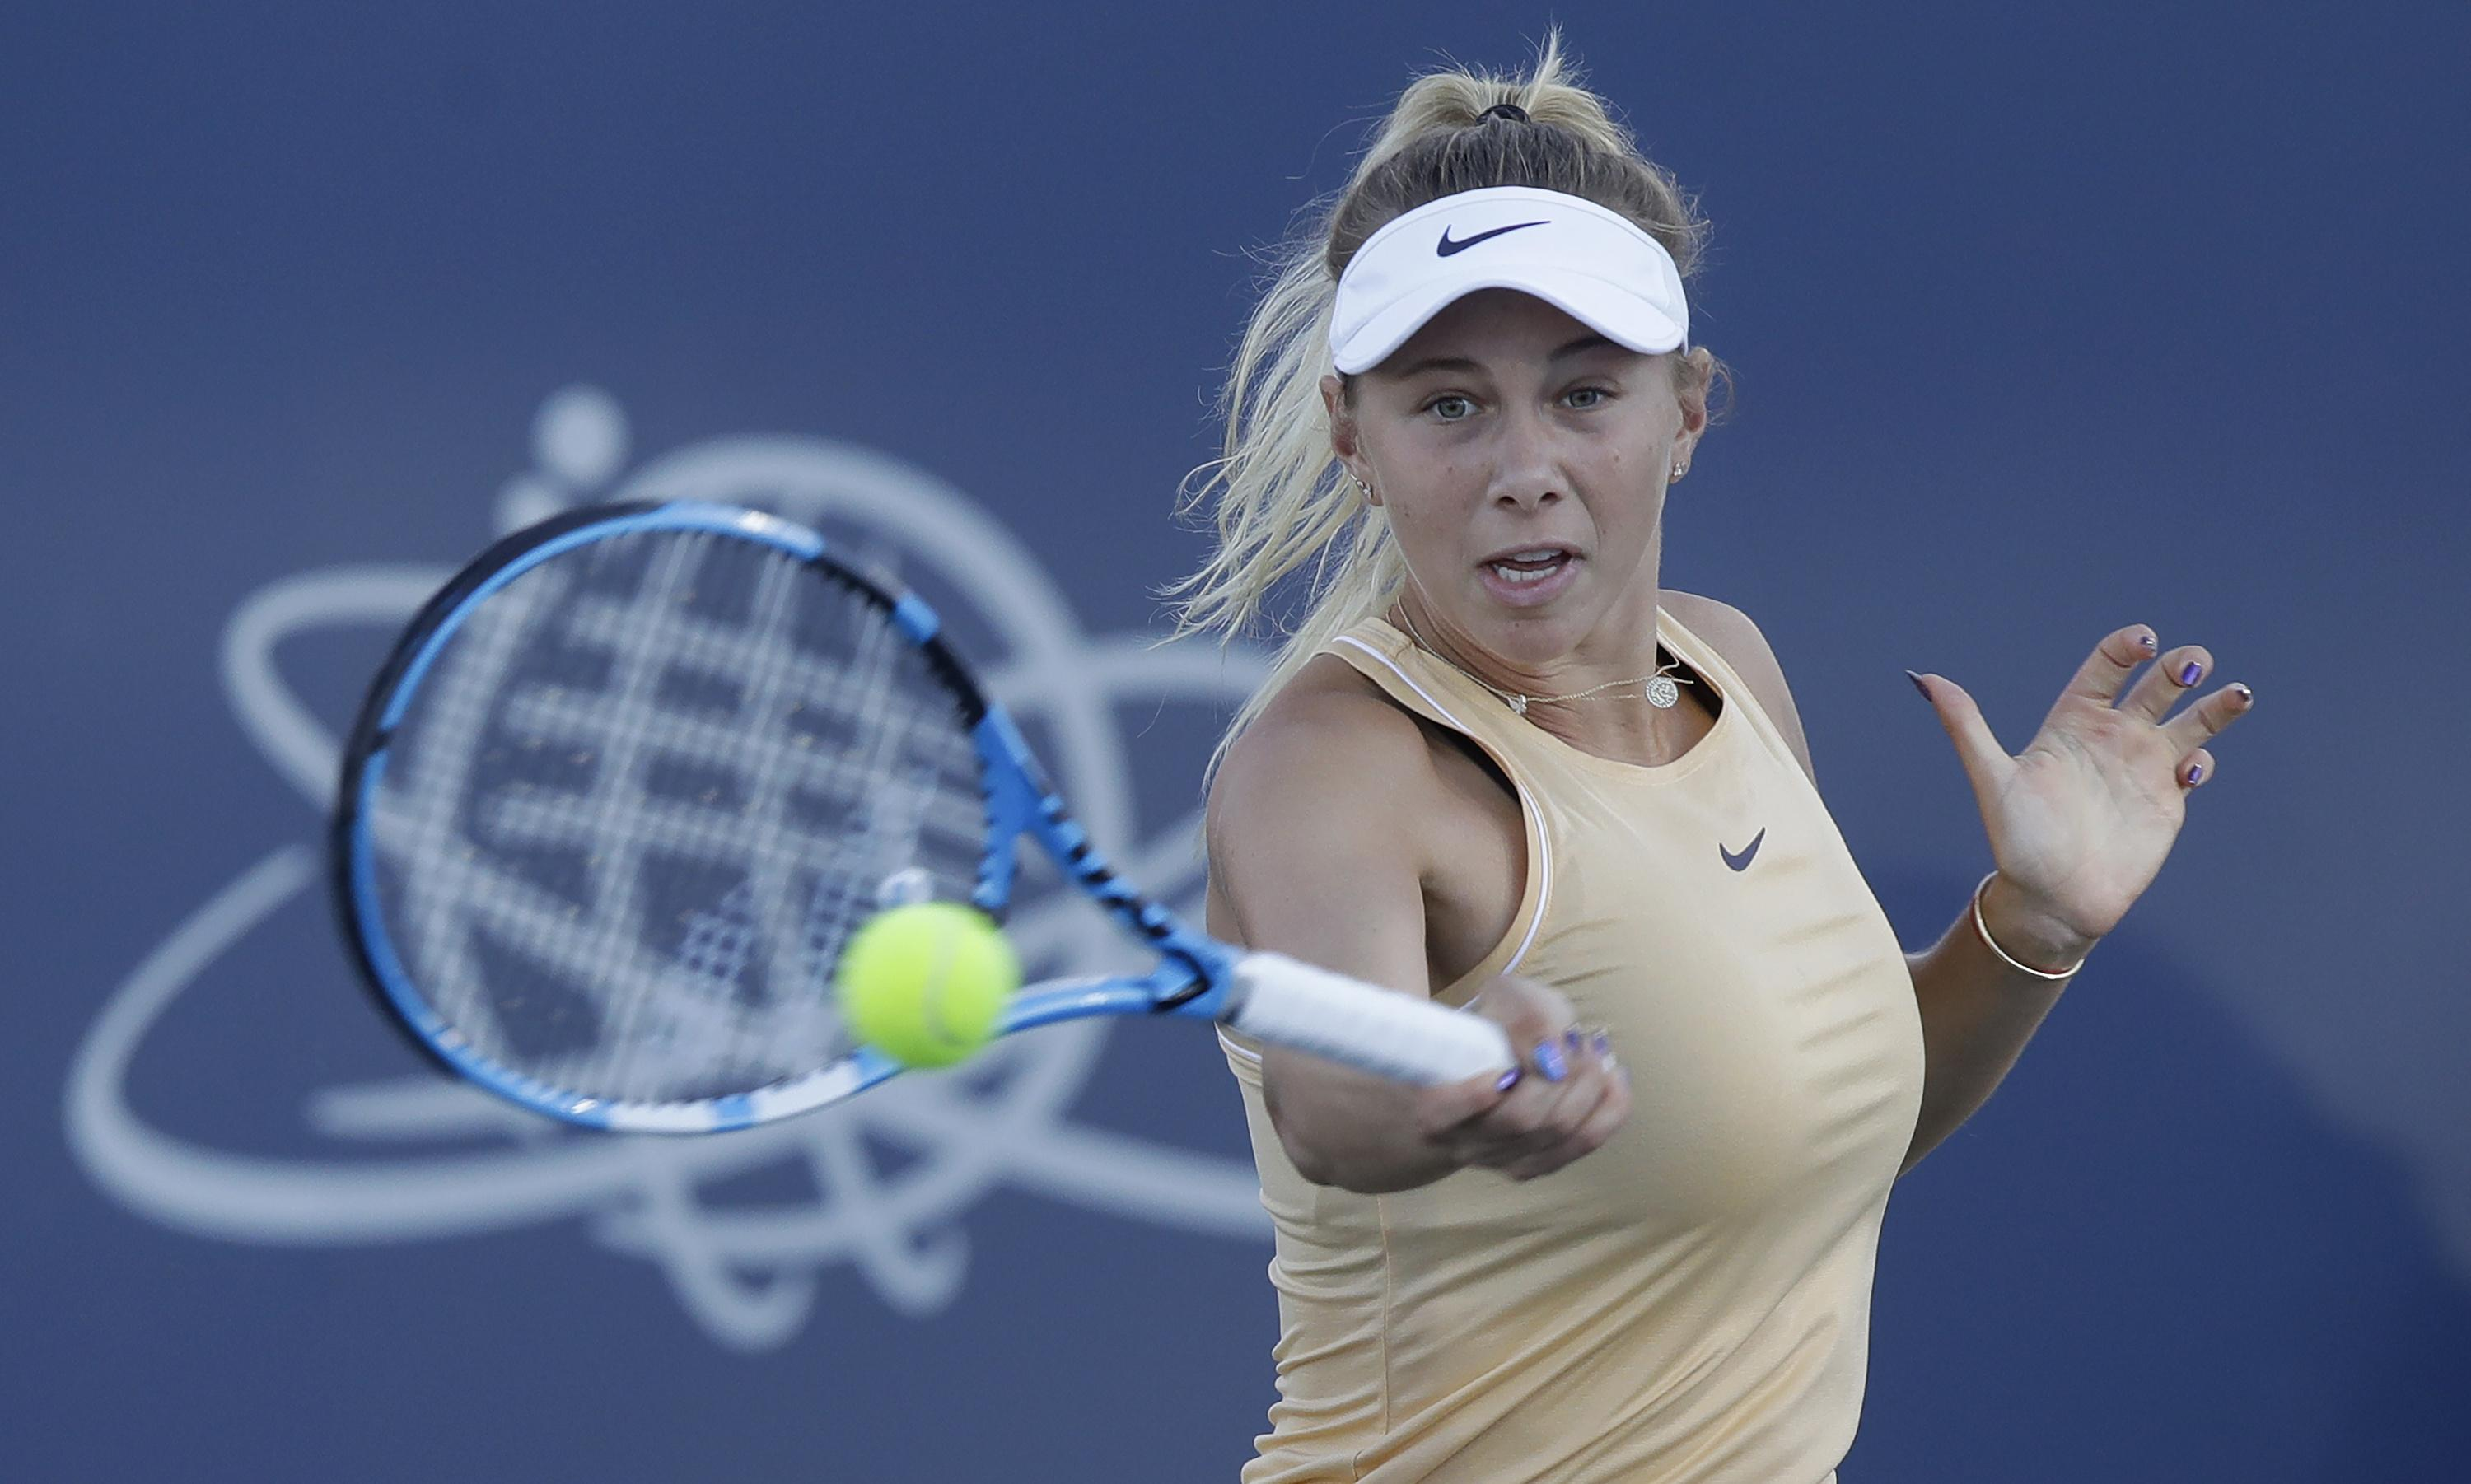 American teen Amanda Anisimova out of US Open after father's sudden death